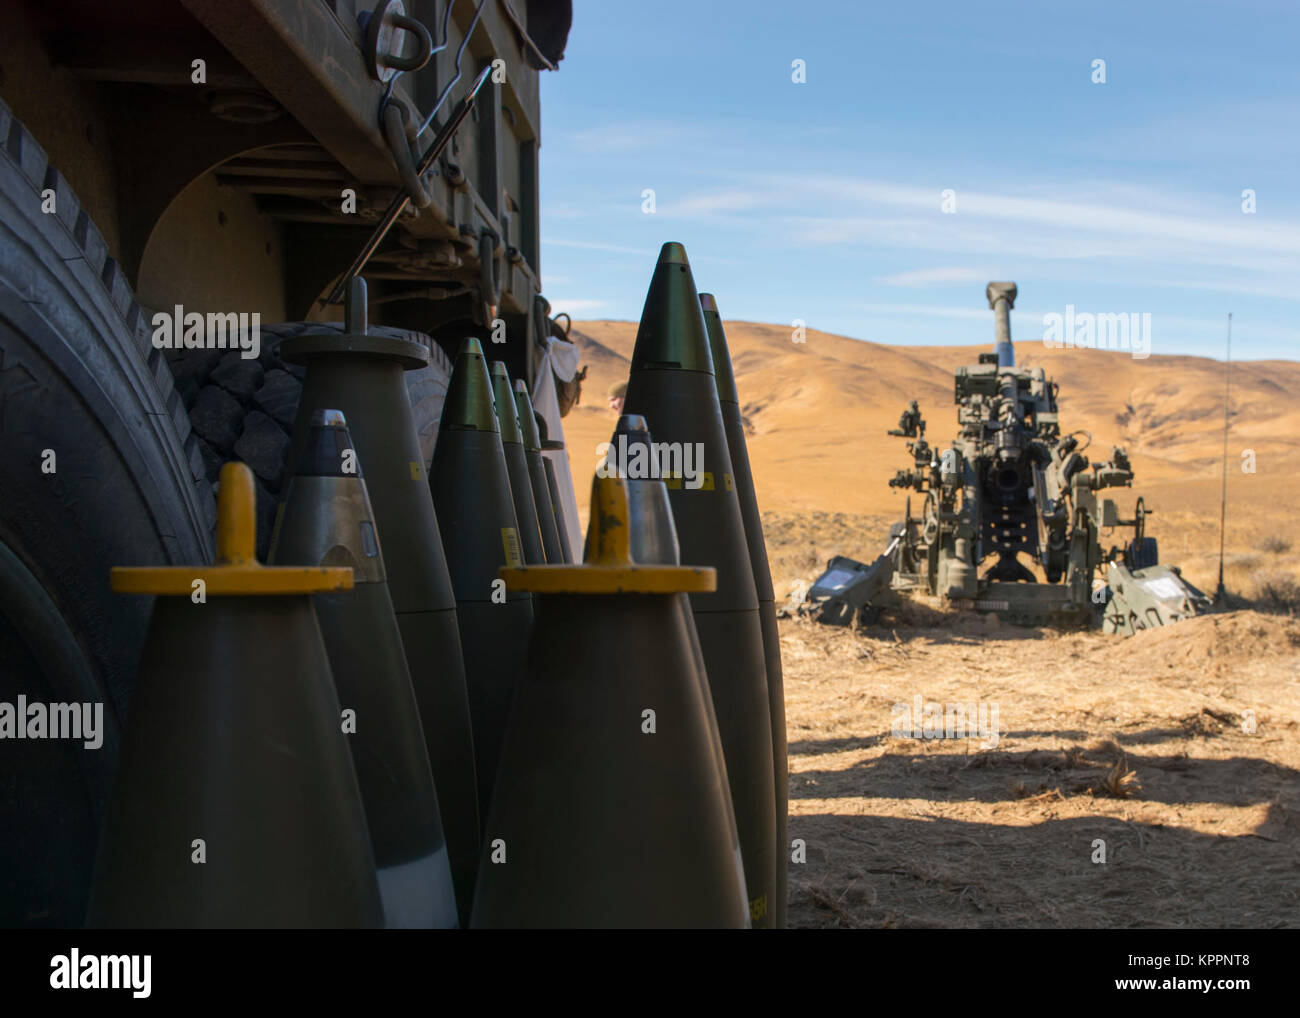 hight resolution of 155 mm projectiles for a m777a2 howitzer sit beside their ammo truck during a live